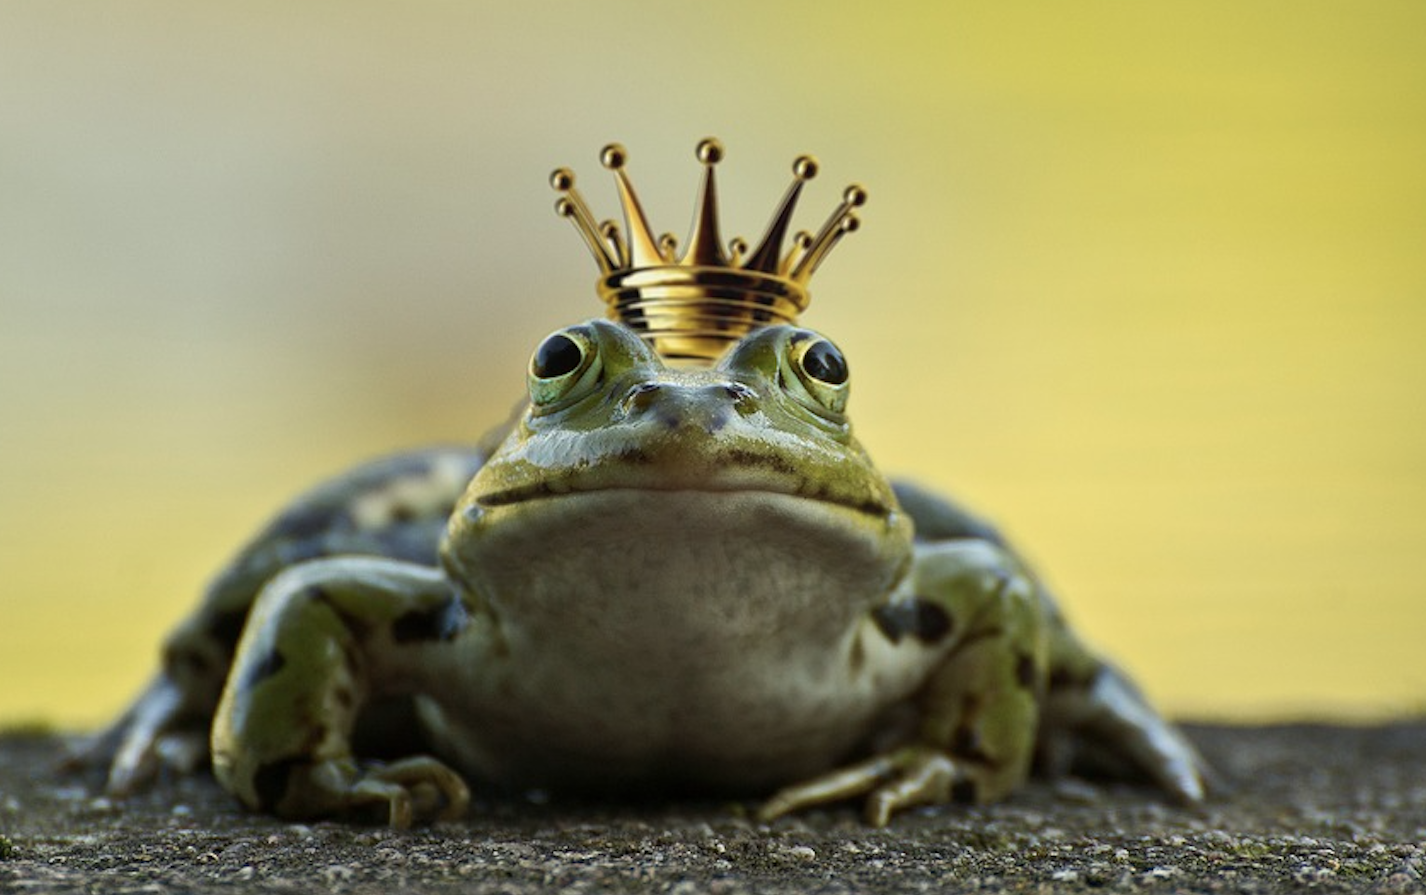 dating advice most prince charmings make better frogs